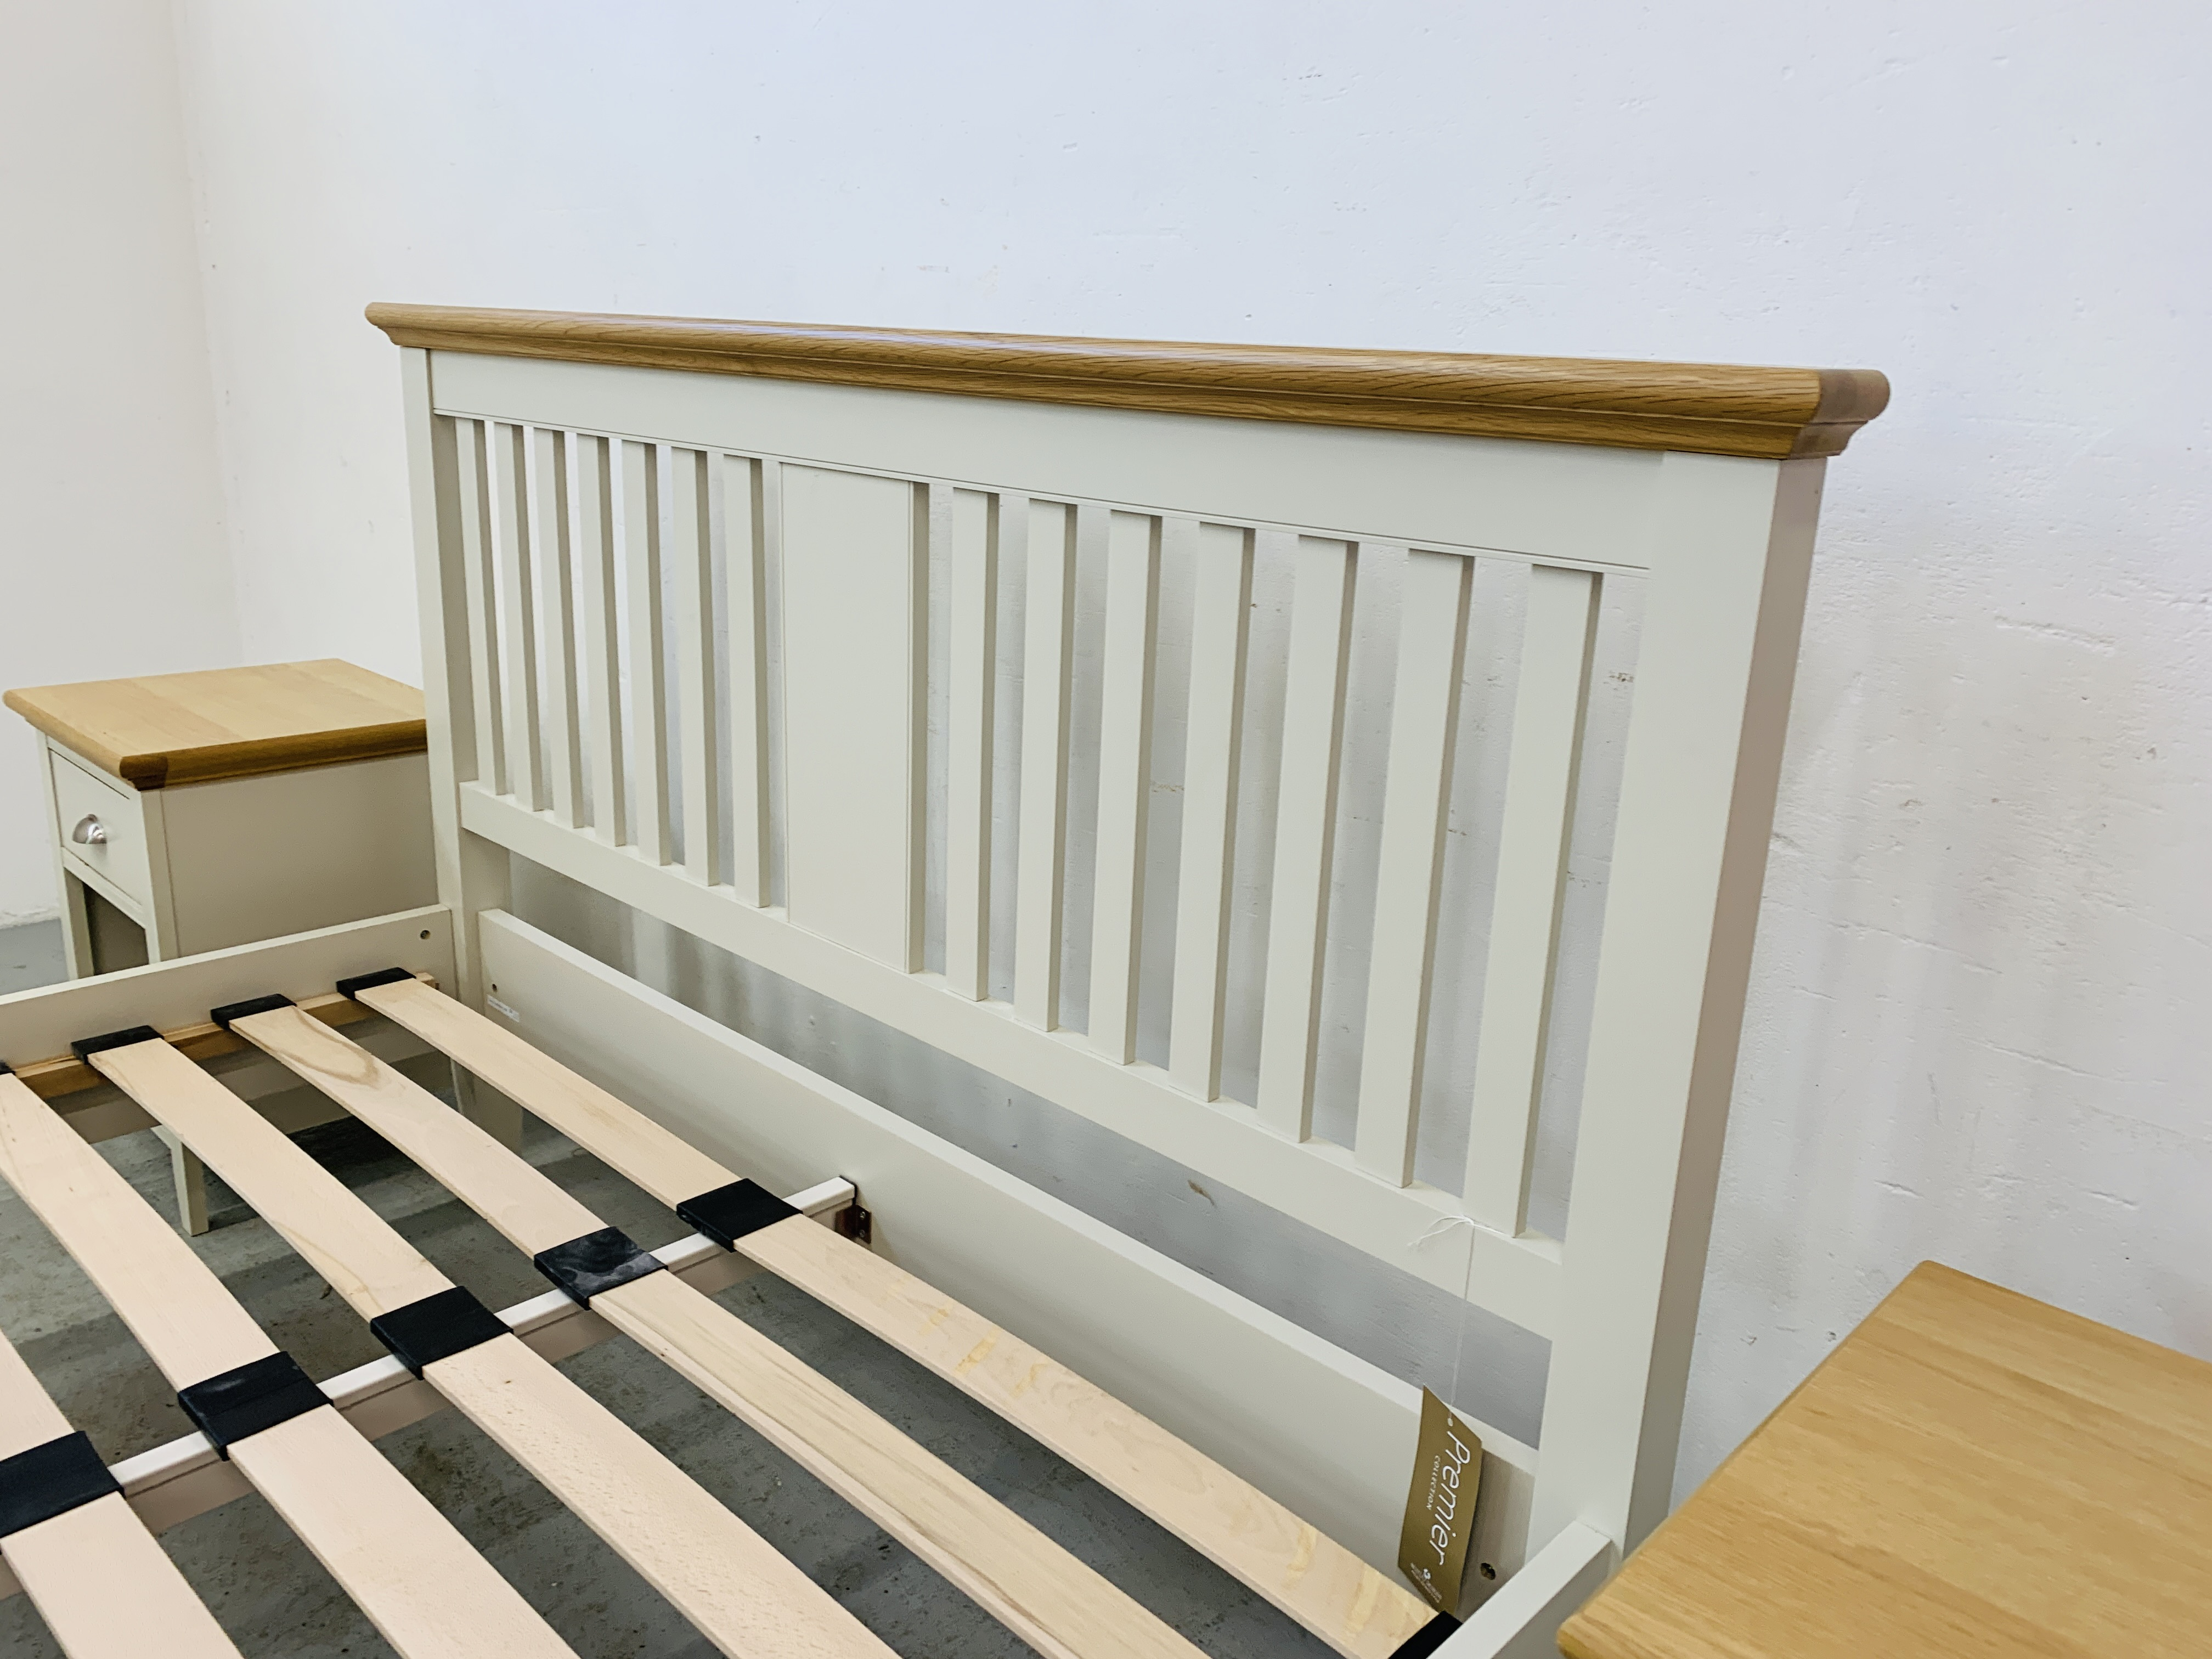 A PREMIER COLLECTION DESIGNER KING SIZE BEDSTEAD WITH MATCHING PAIR OF SINGLE DRAWER BEDSIDE STANDS - Image 10 of 15